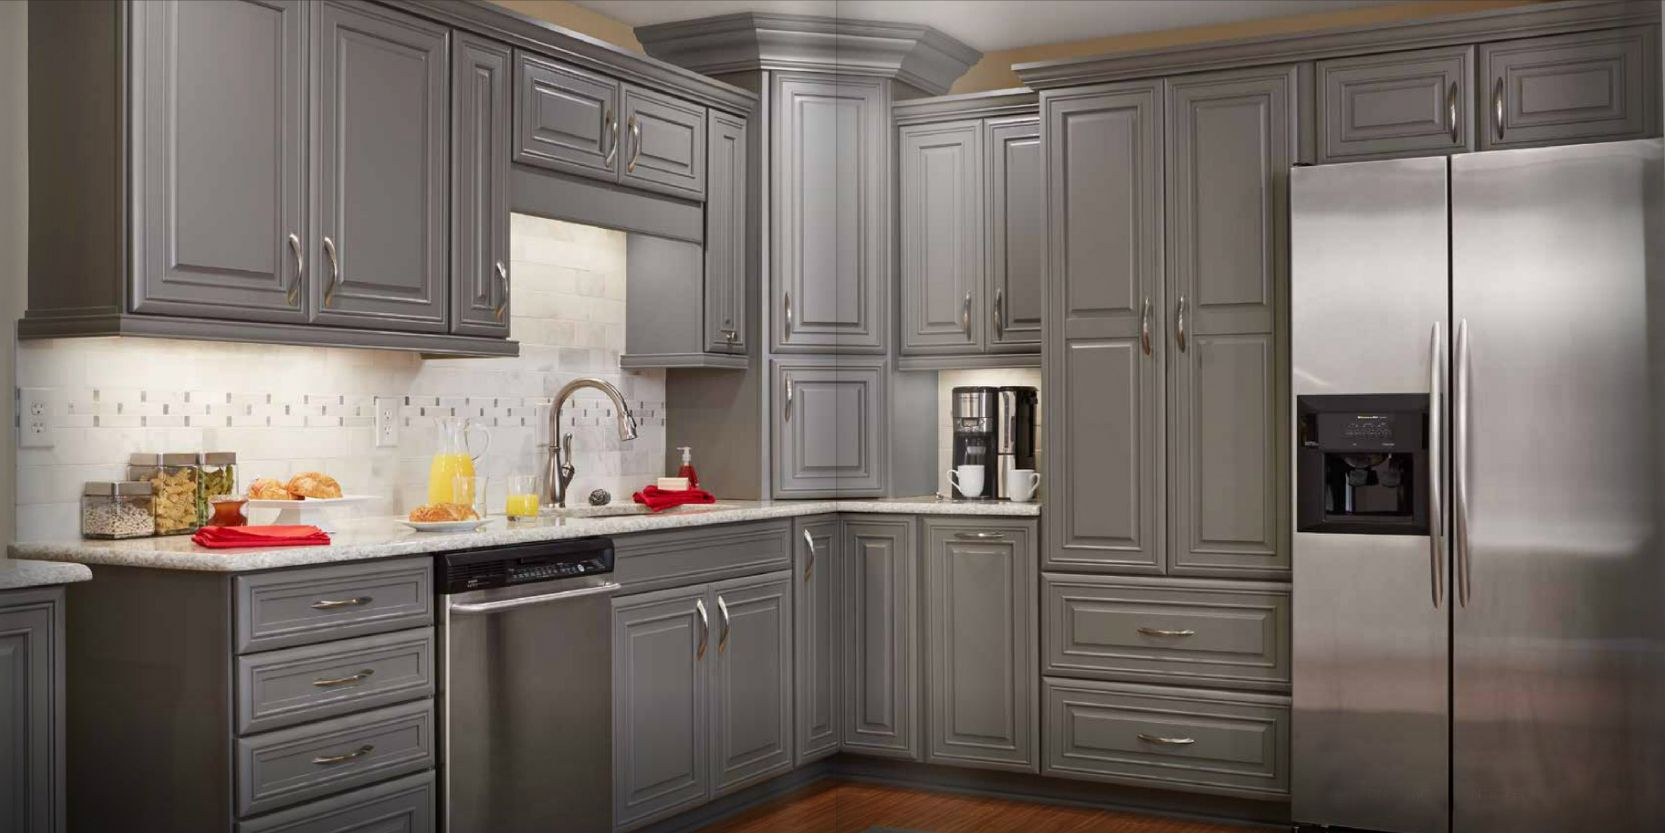 grey stained kitchen cabinets - Google Search | Logan Blvd ...